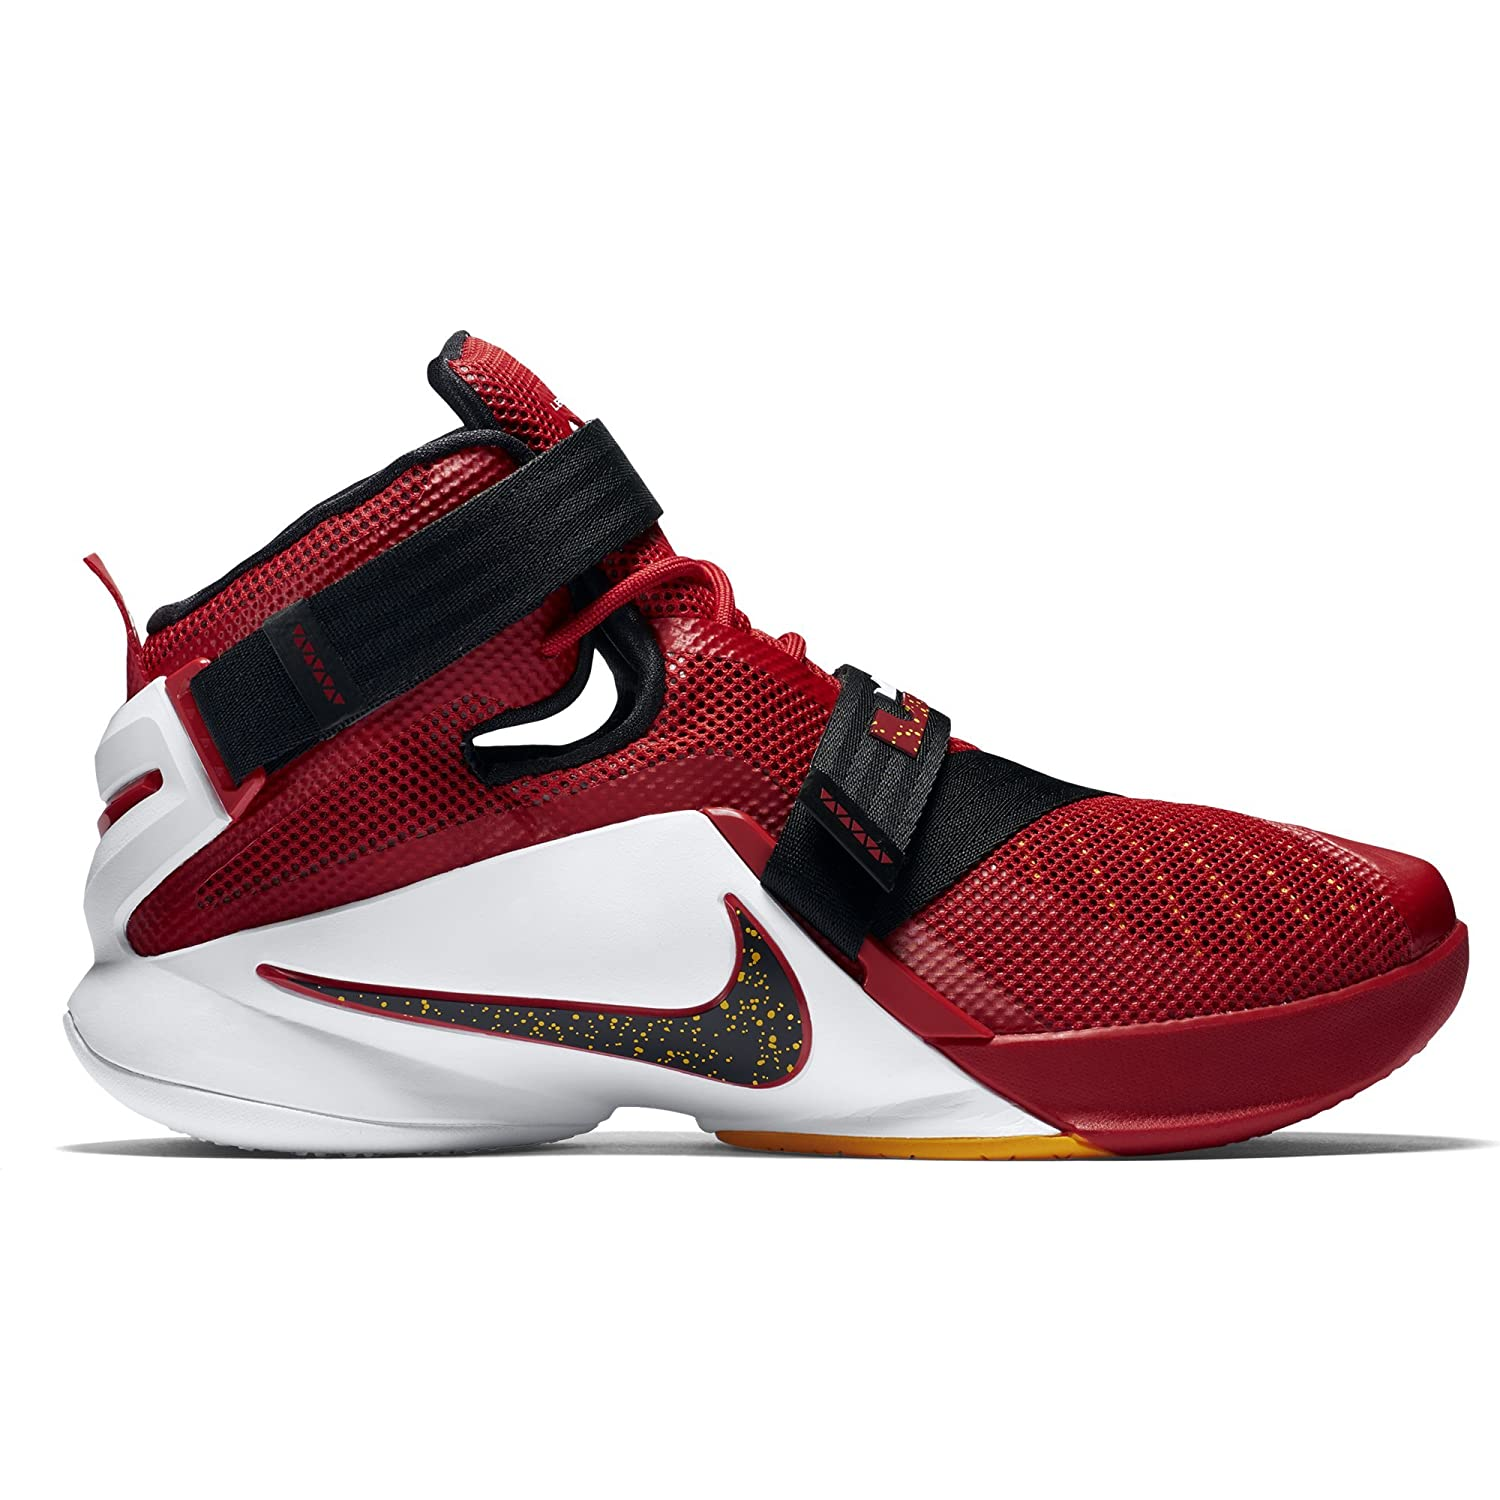 Nike Men s Lebron Soldier IX Basketball Shoe: Buy Online at Low Prices in  India - Amazon.in